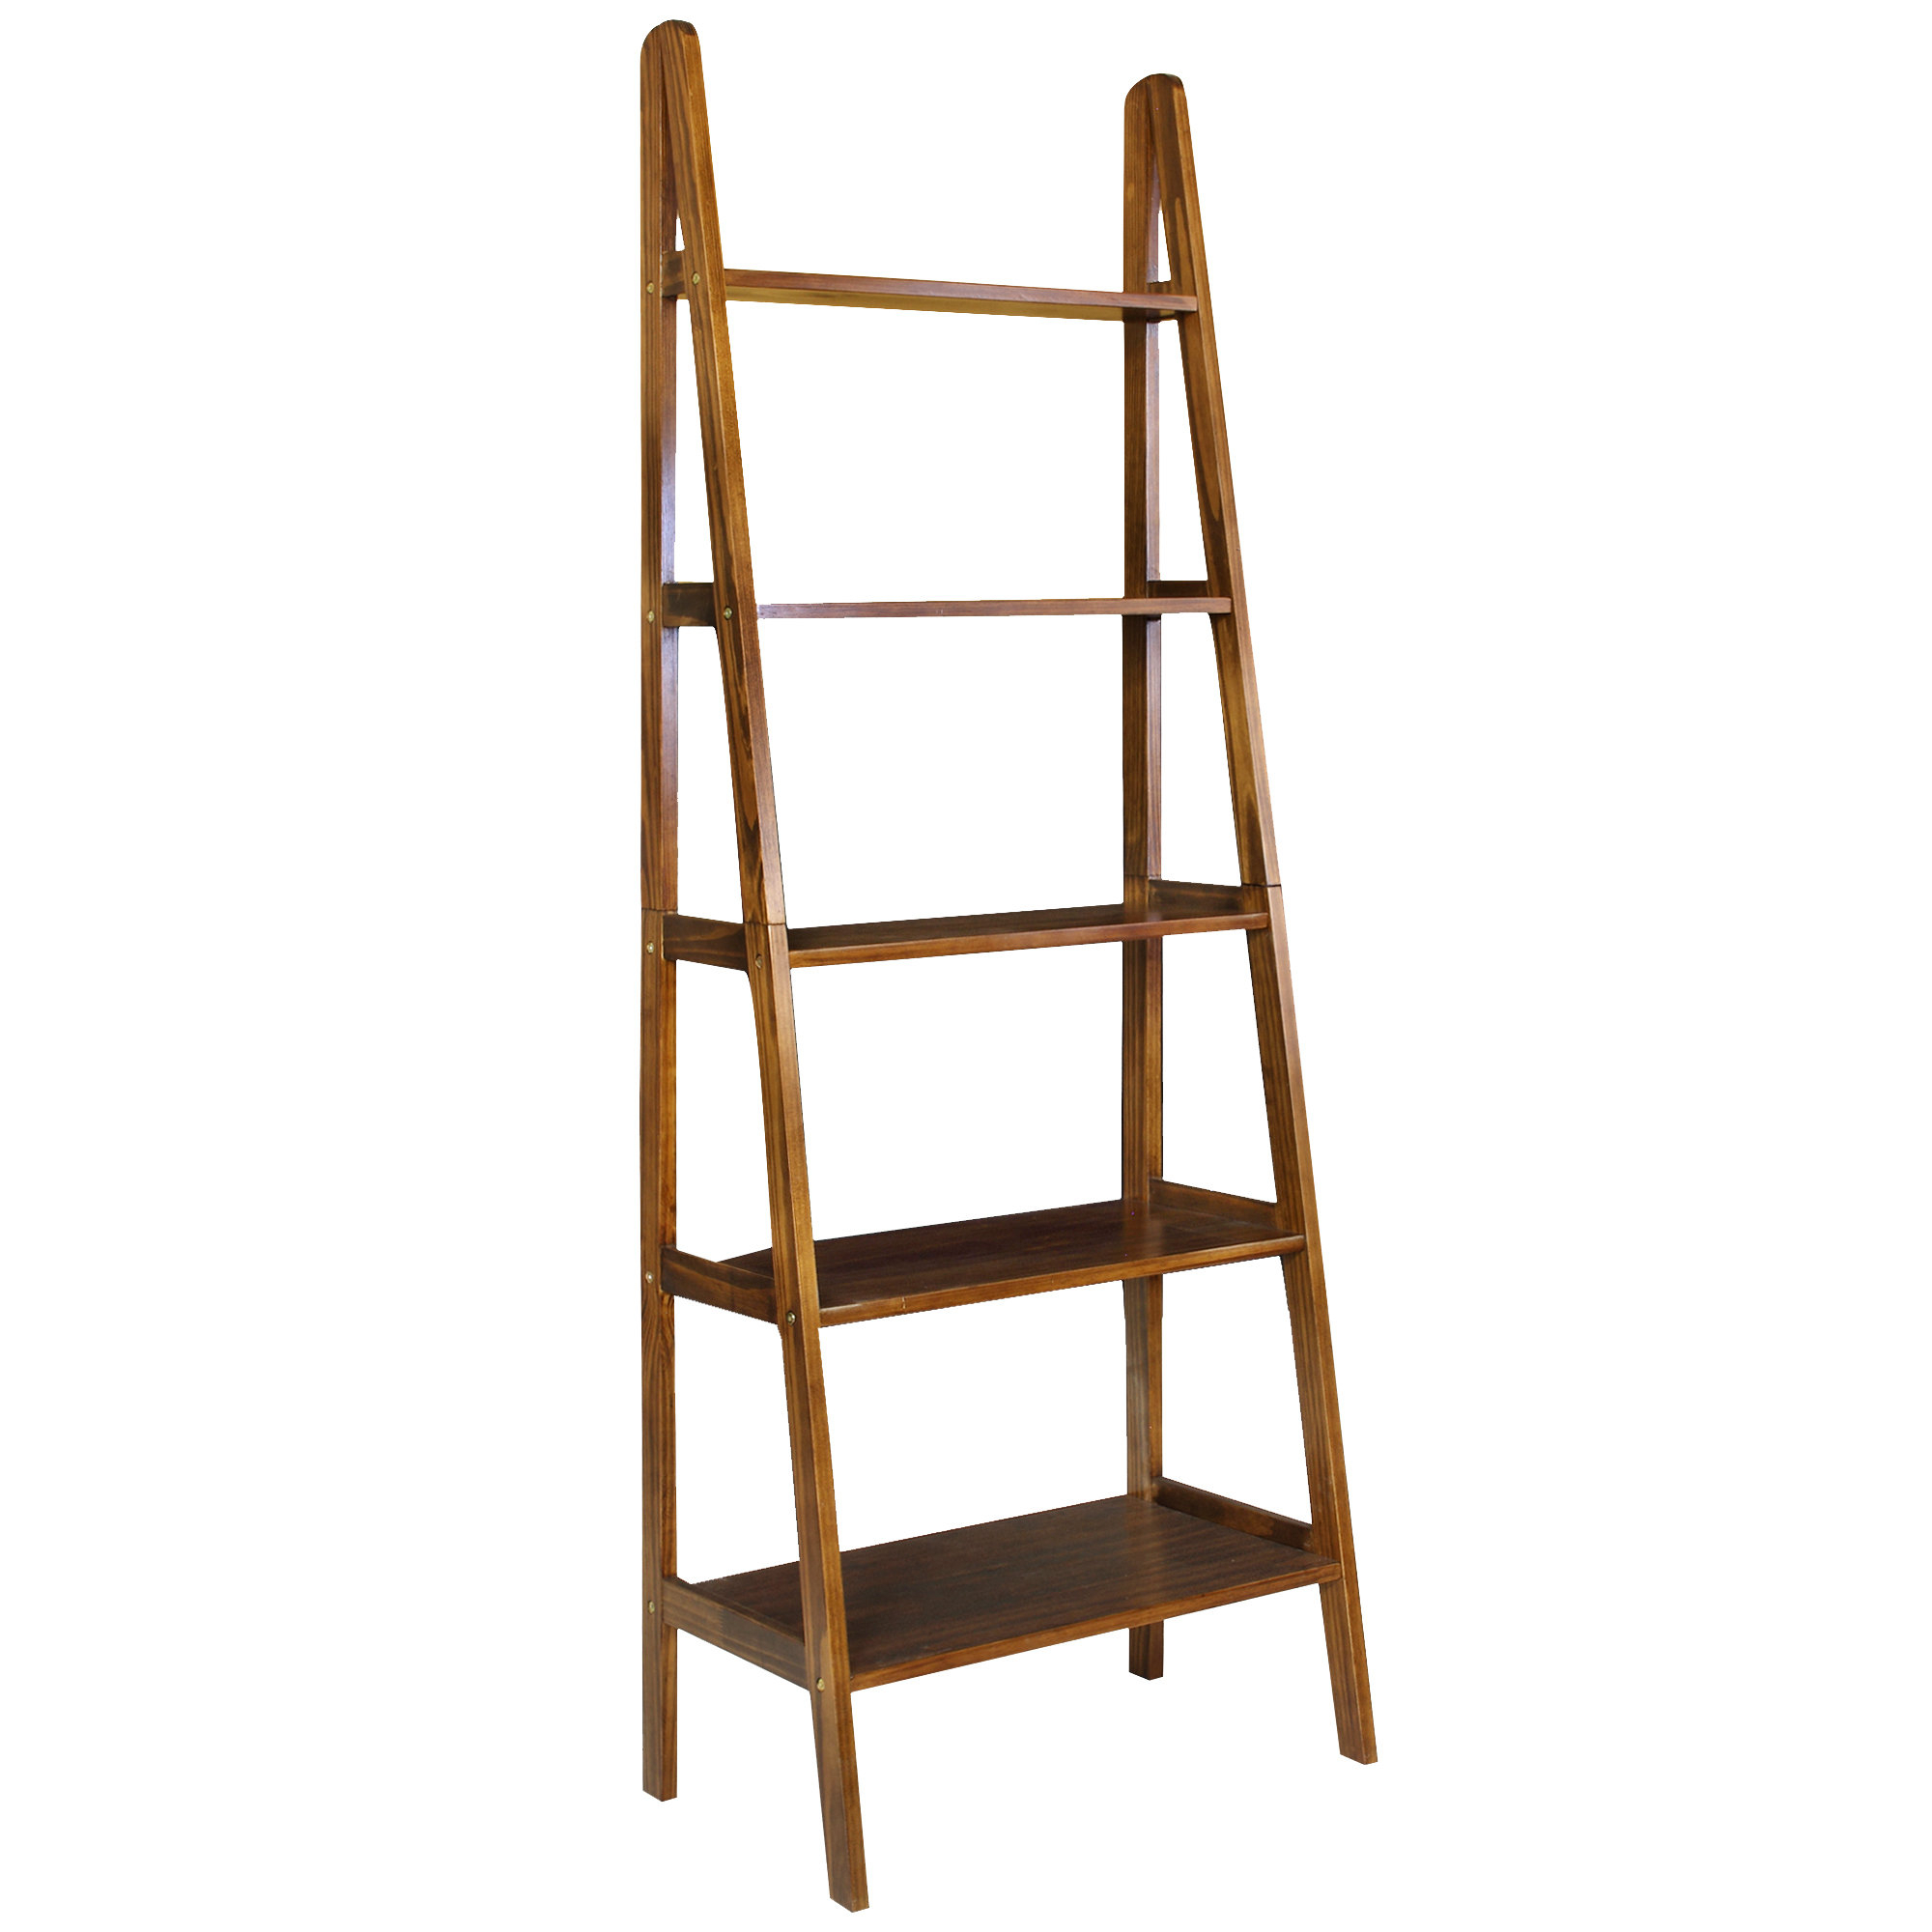 Zipcode Design Ranie Ladder Bookcase Throughout Well Known Ranie Ladder Bookcases (View 20 of 20)